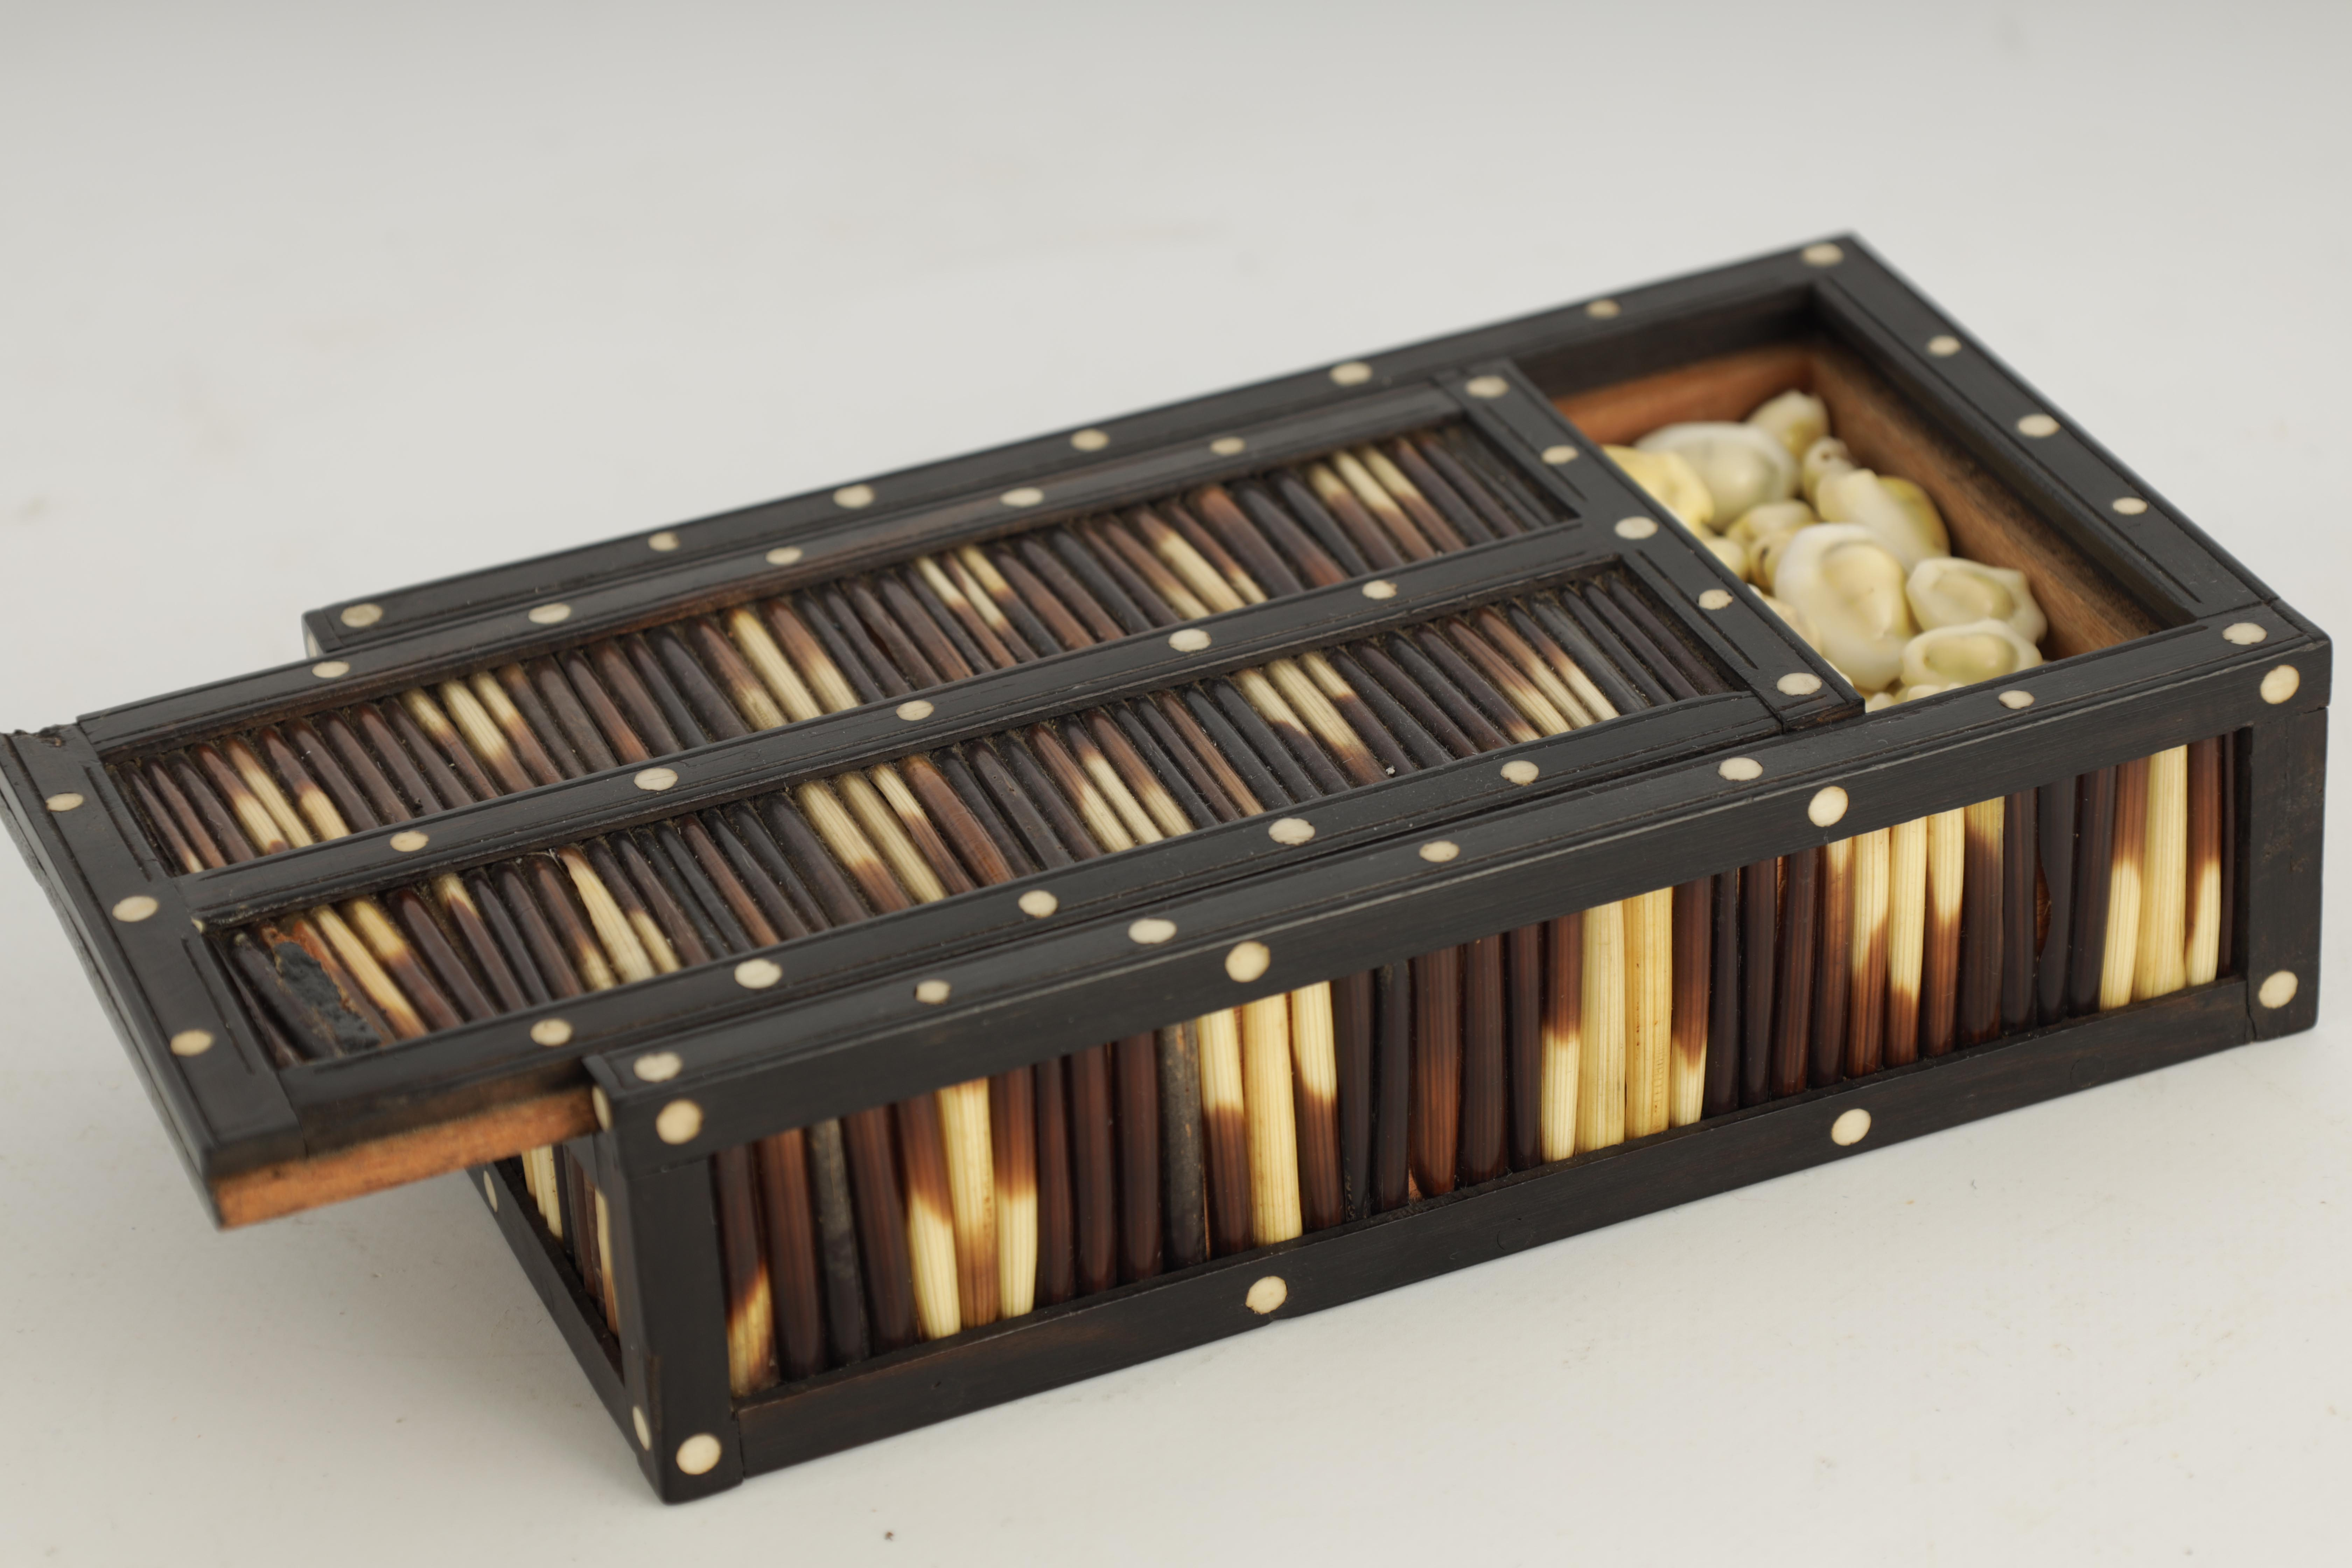 A 19TH CENTURY QUILL BOX with ebony and bone inlaid edges 17cm wide 9.5cm deep 4.5cm high - Image 5 of 7